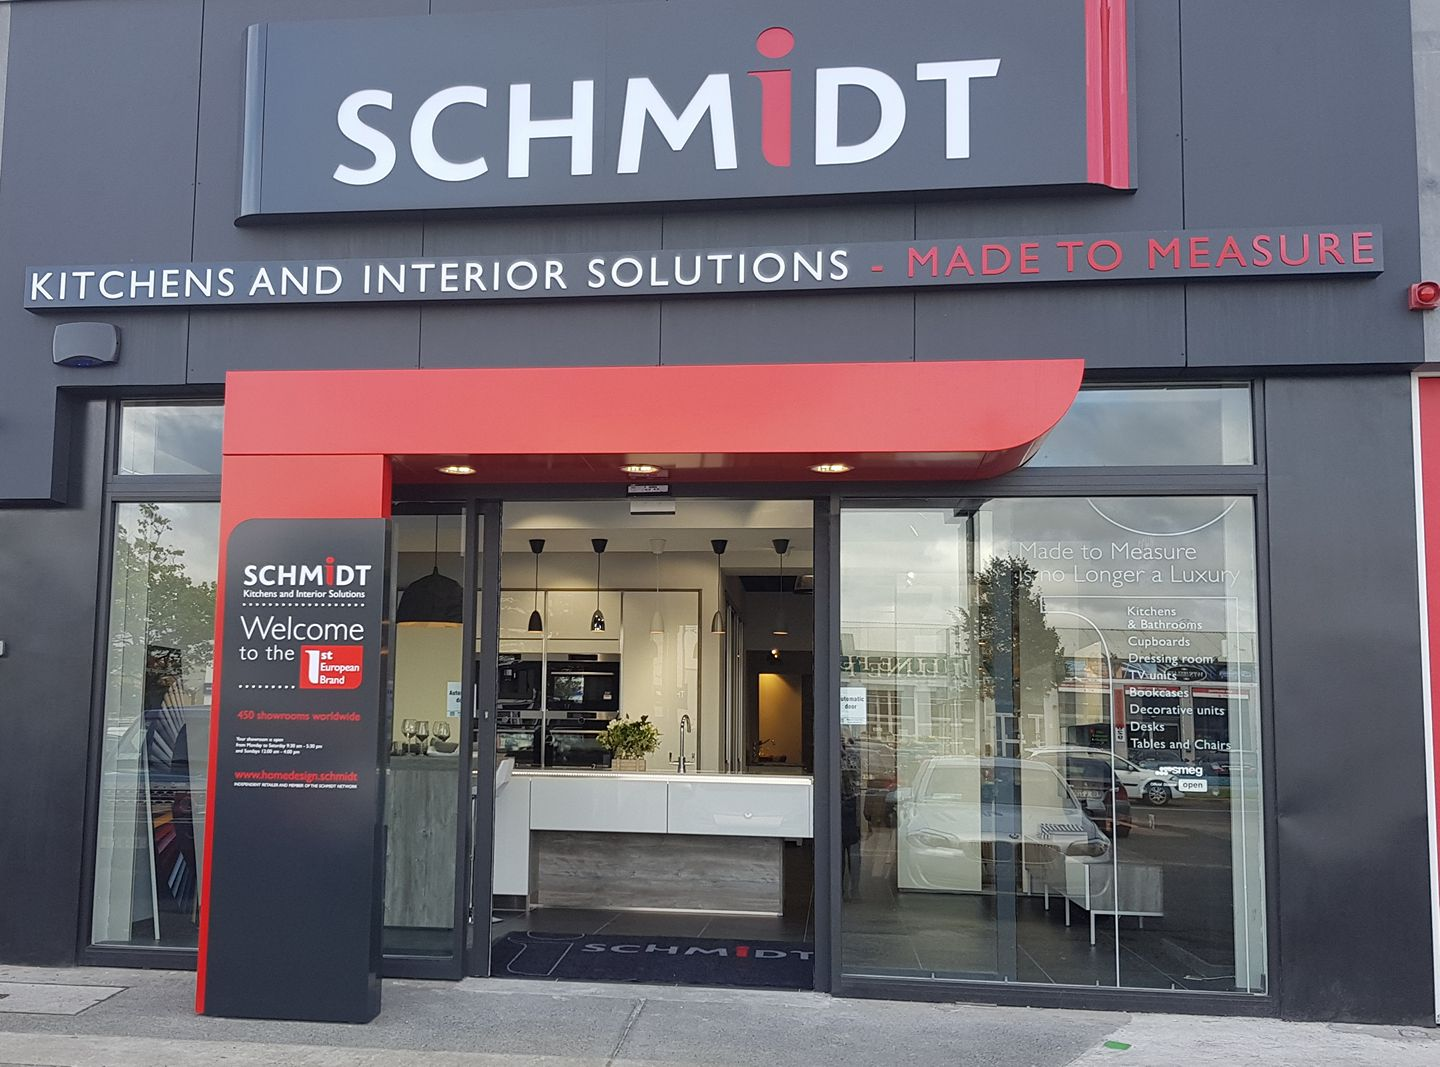 Schmidt Kitchen's and Interior Solutions